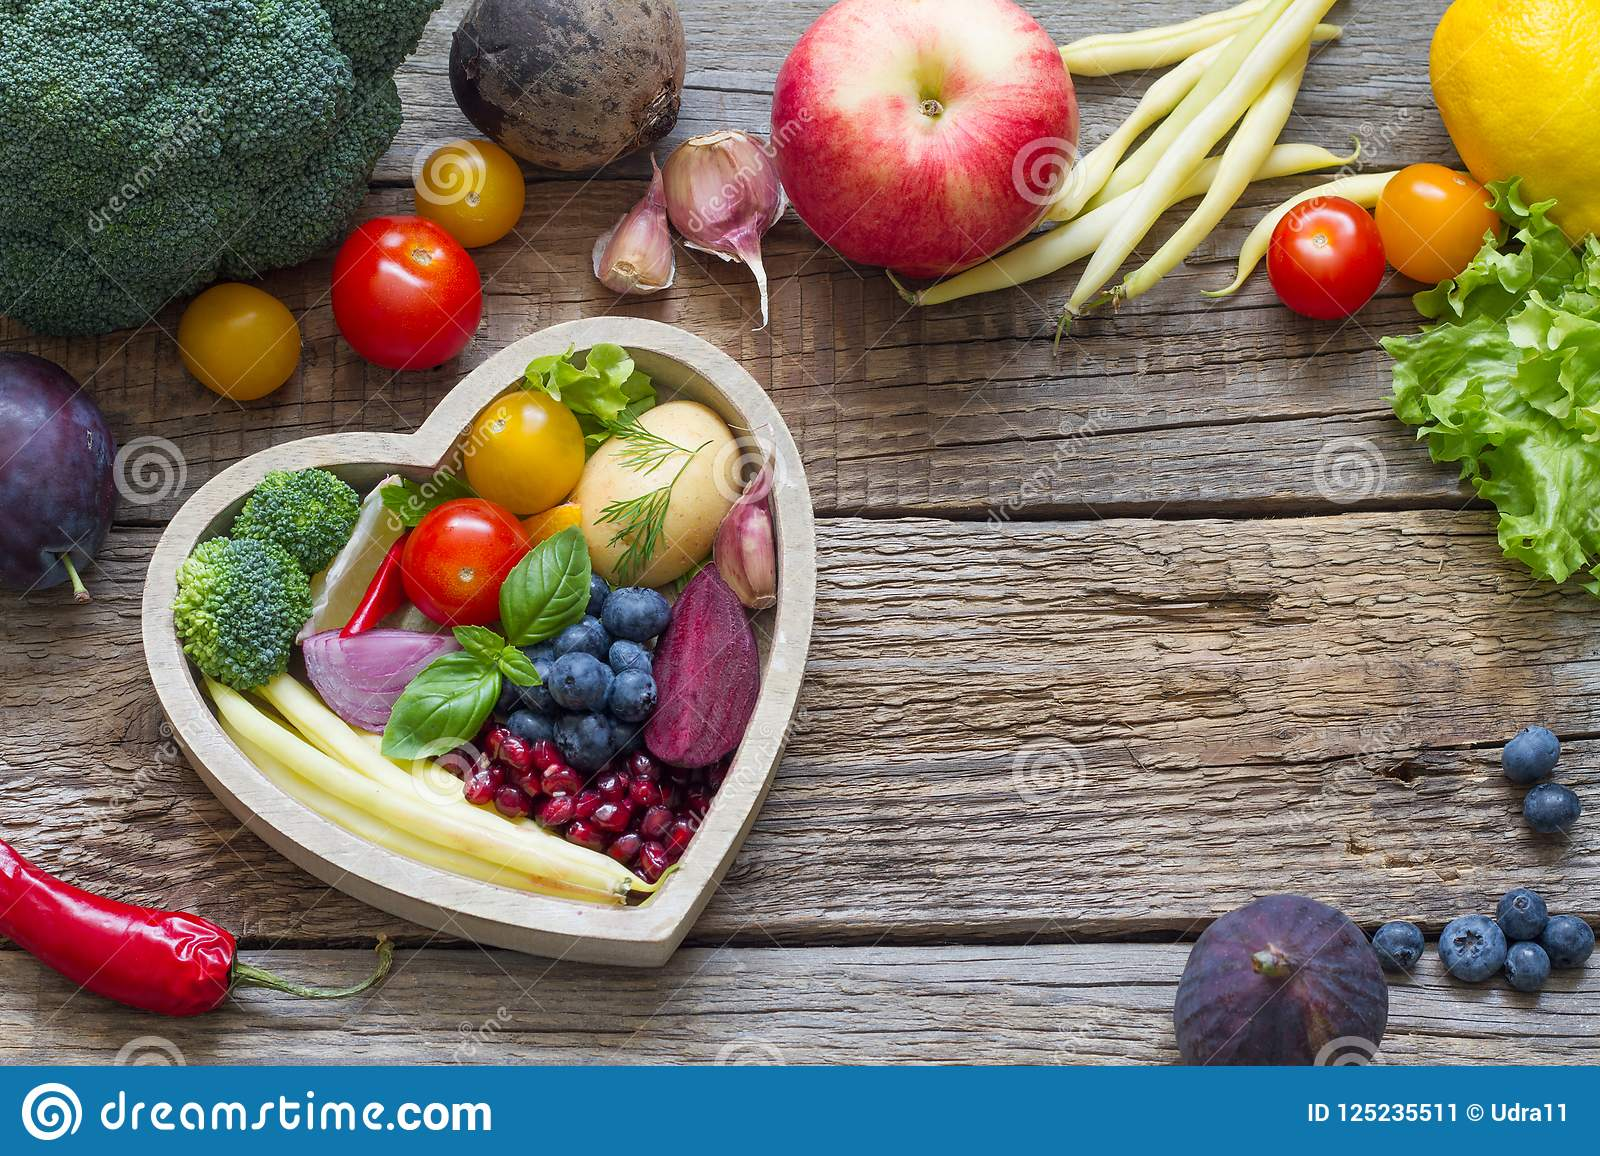 Healthy Food In Heartt Cooking Concept With Fresh